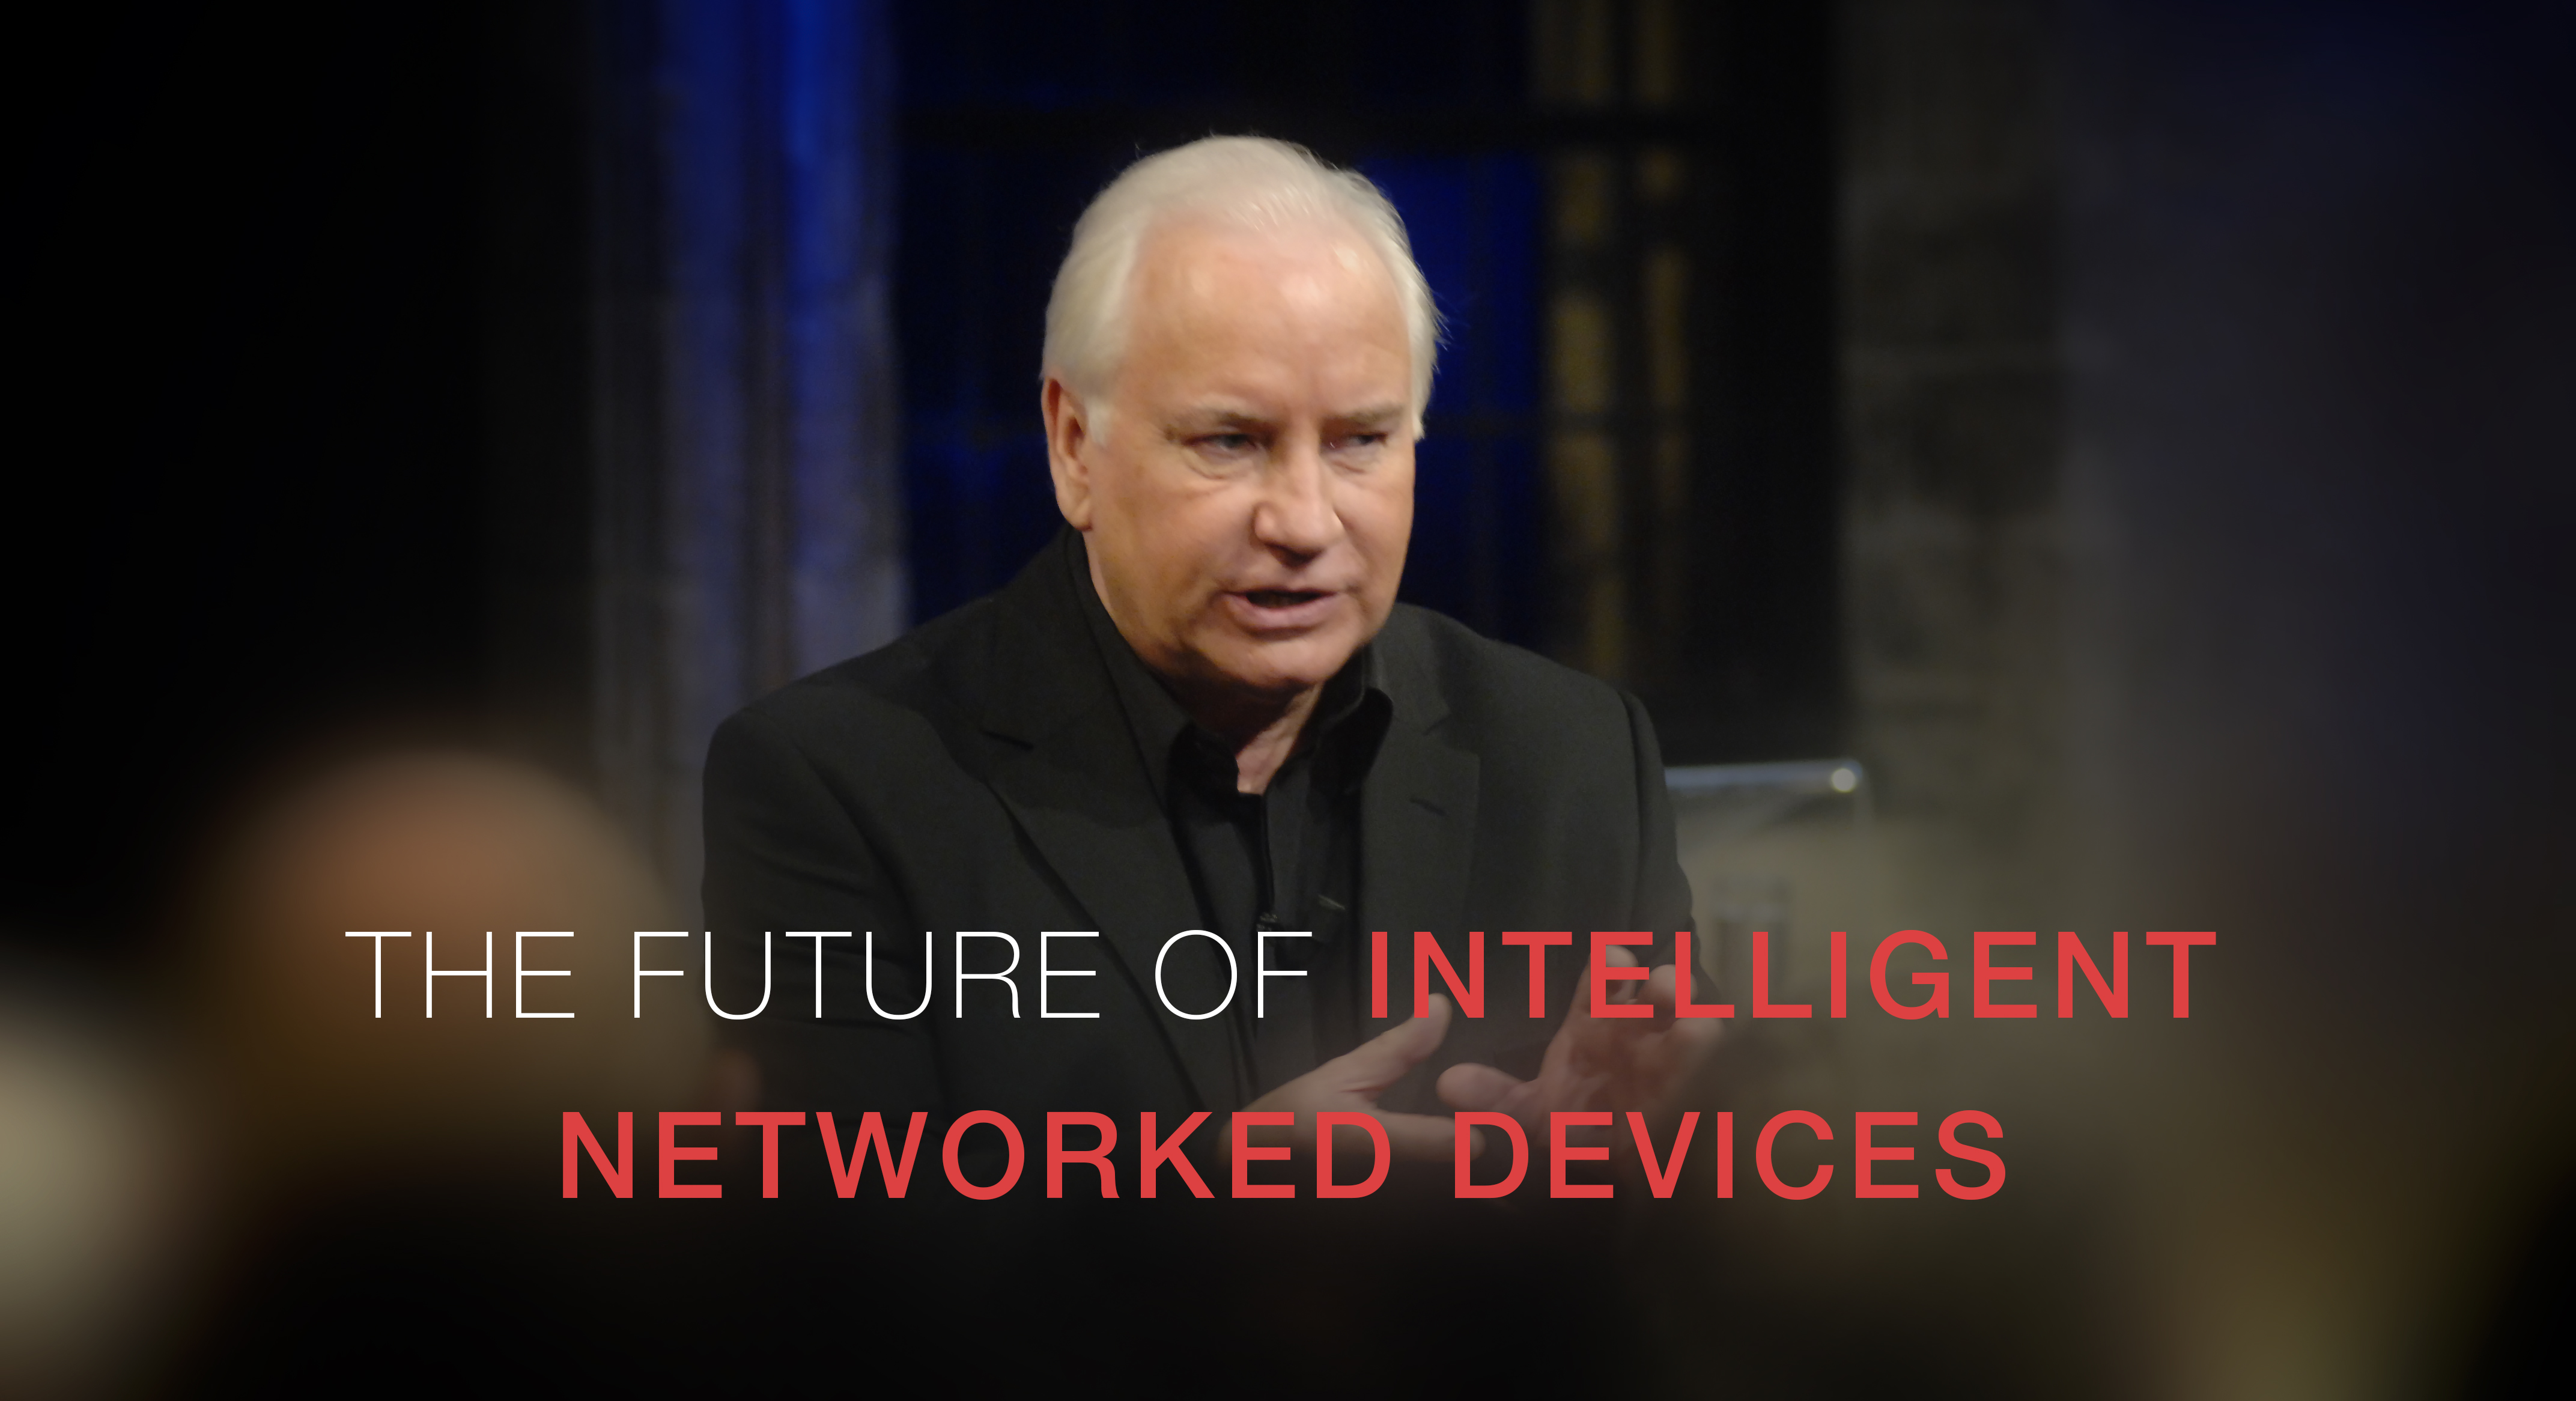 The Future of Intelligent Networked Devices